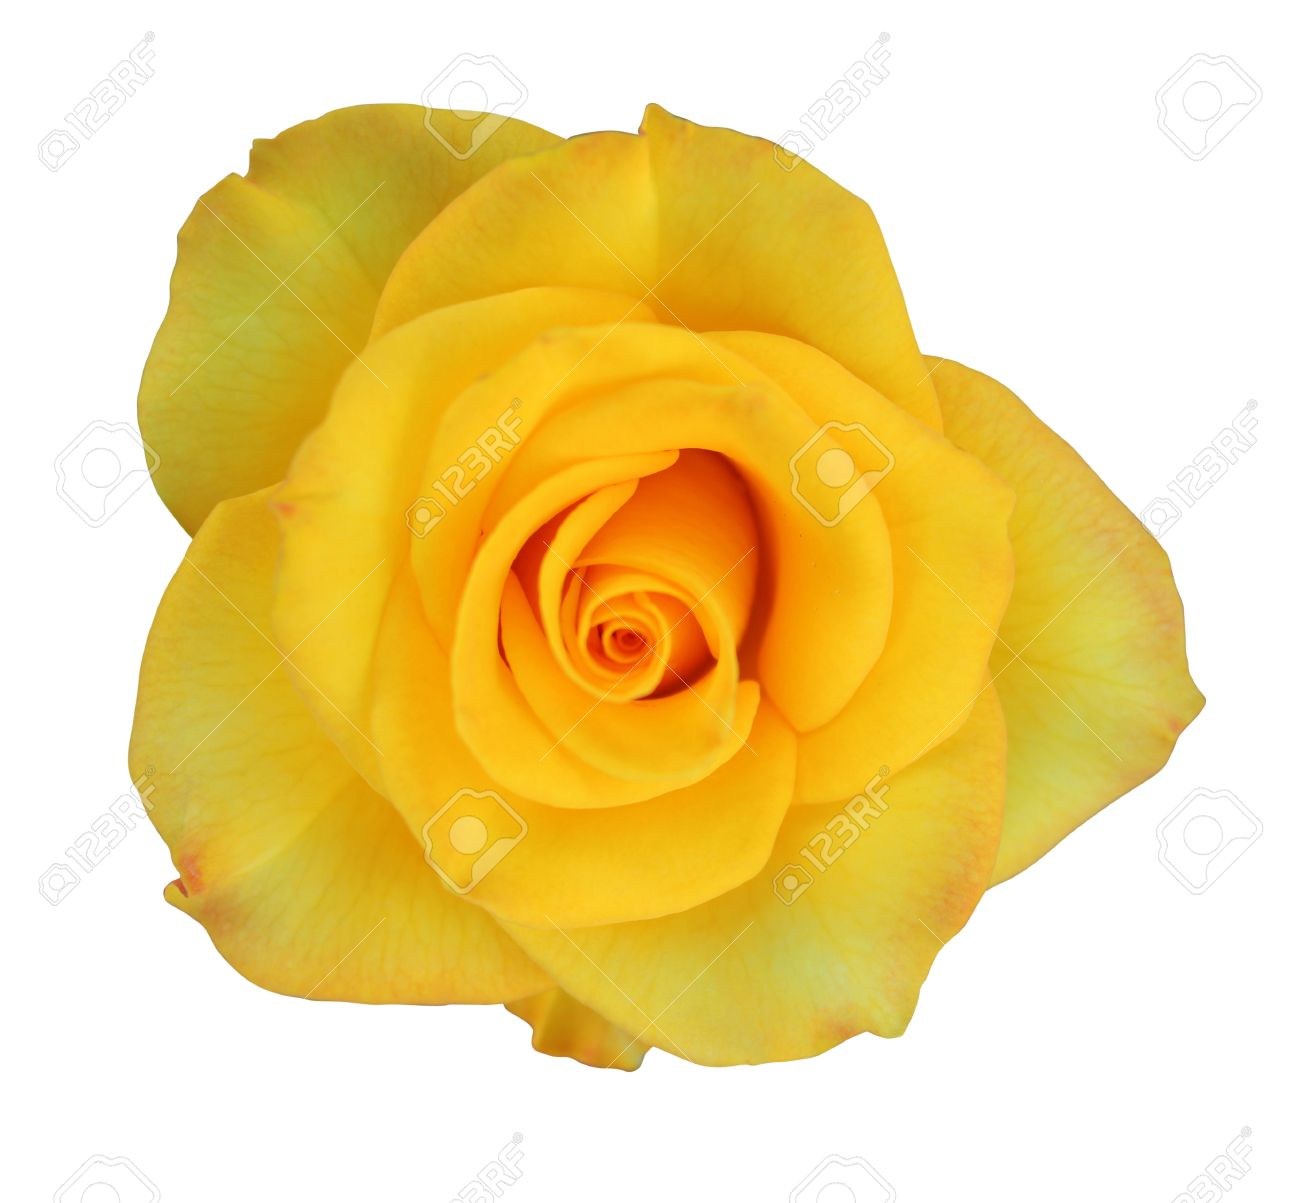 Yellow rose symbolizes image collections meaning of text symbols beautiful yellow rose symbol of friendship stock photo picture and mightylinksfo